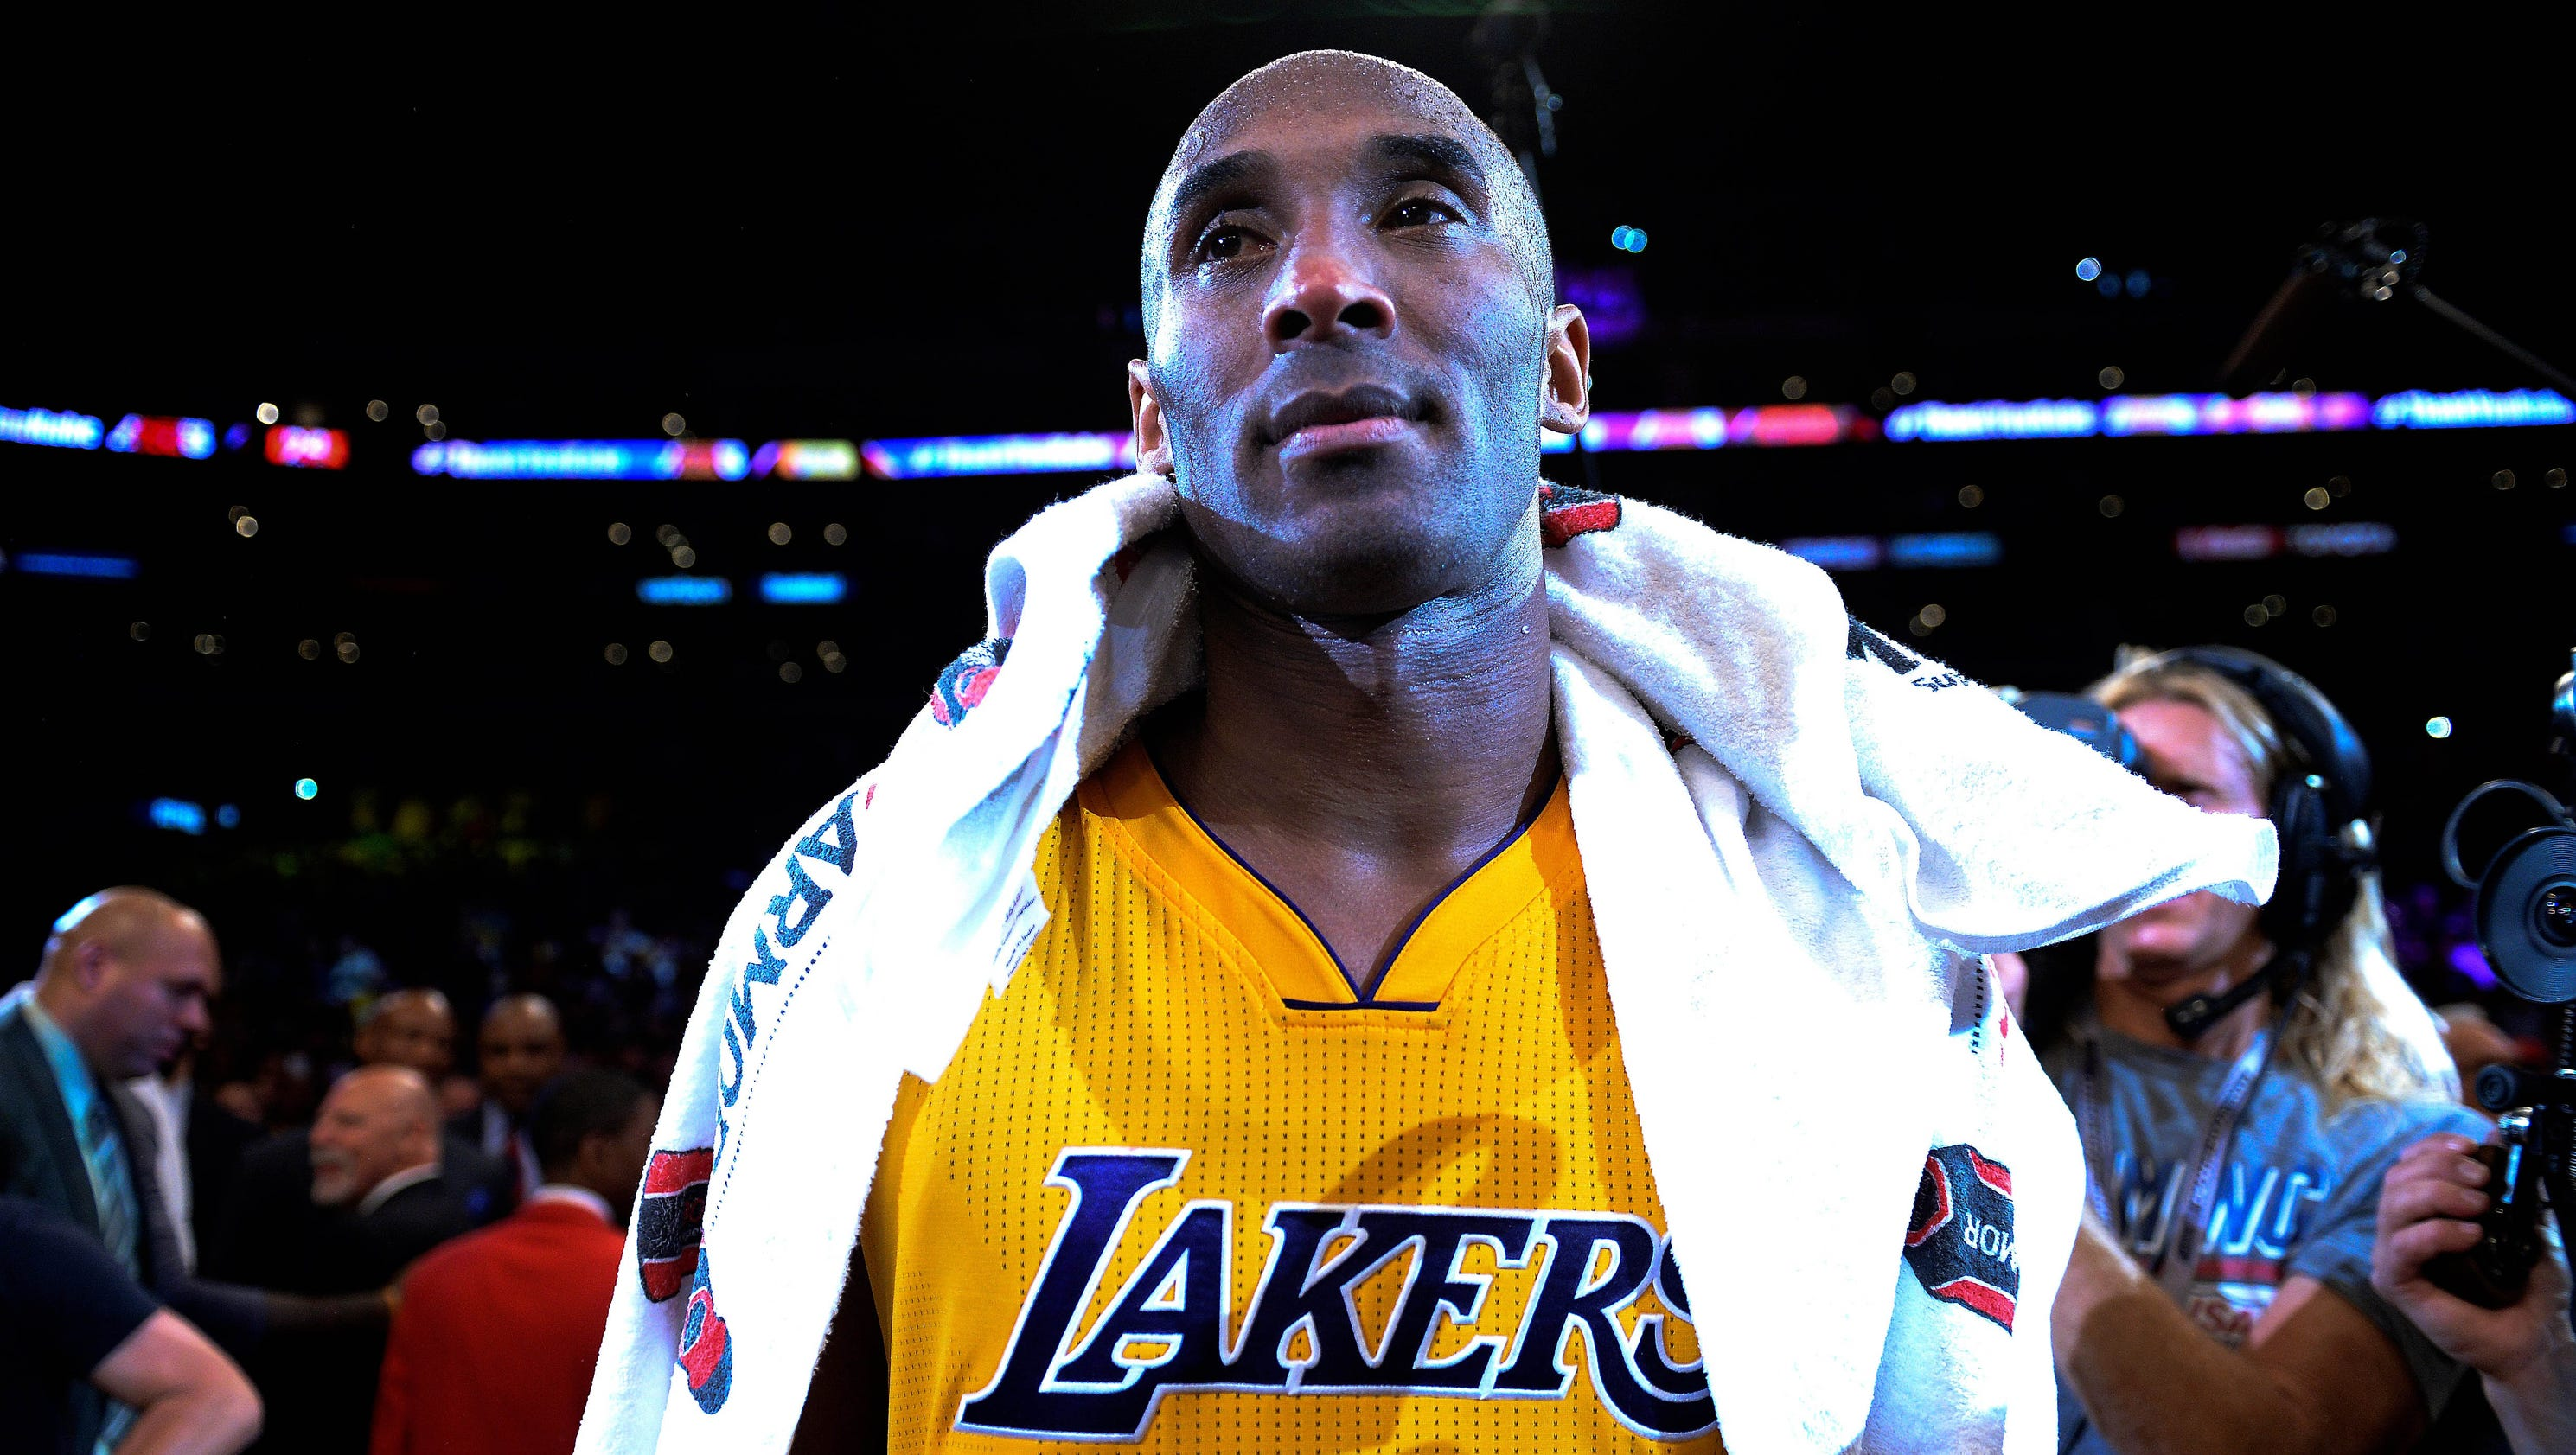 ... portland trail blazers usp nba orlando magic at los angeles lakers s bkn  lal orl usa ca. How Kobe Bryant Spent His Last Moments As A Laker After  Epic ... 37330c11f